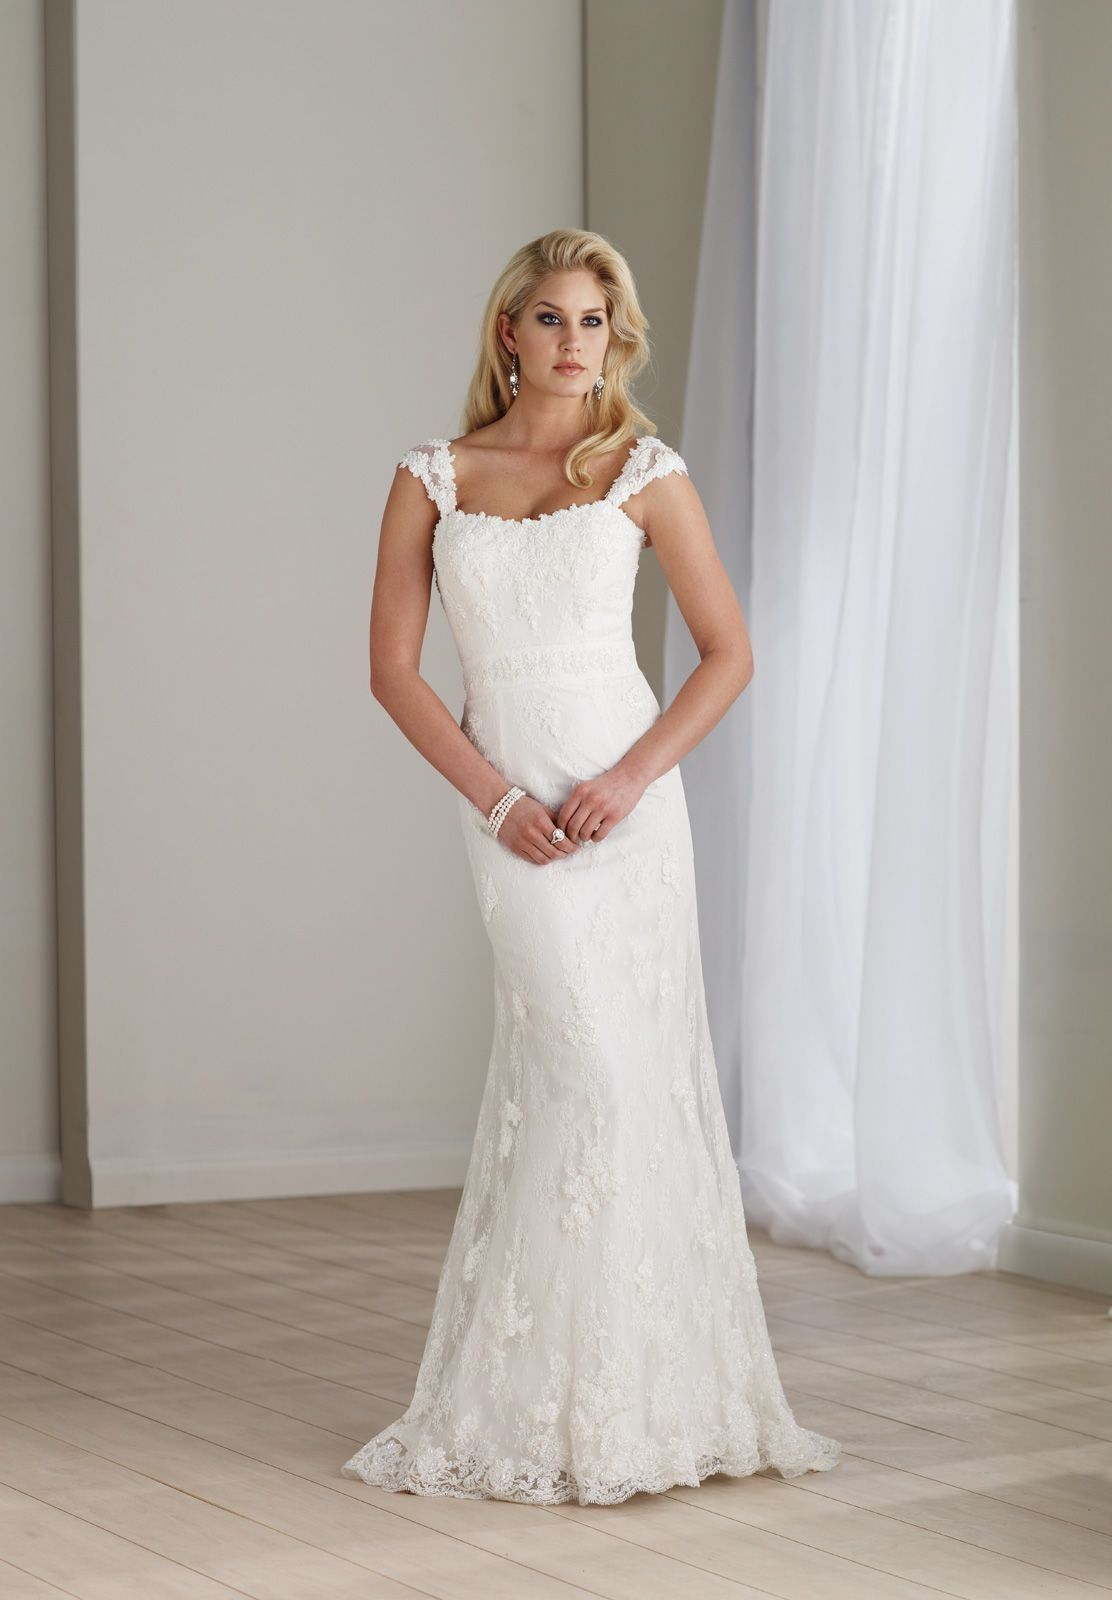 Bateau Wedding Dresses Lace A Line Elegant Dress